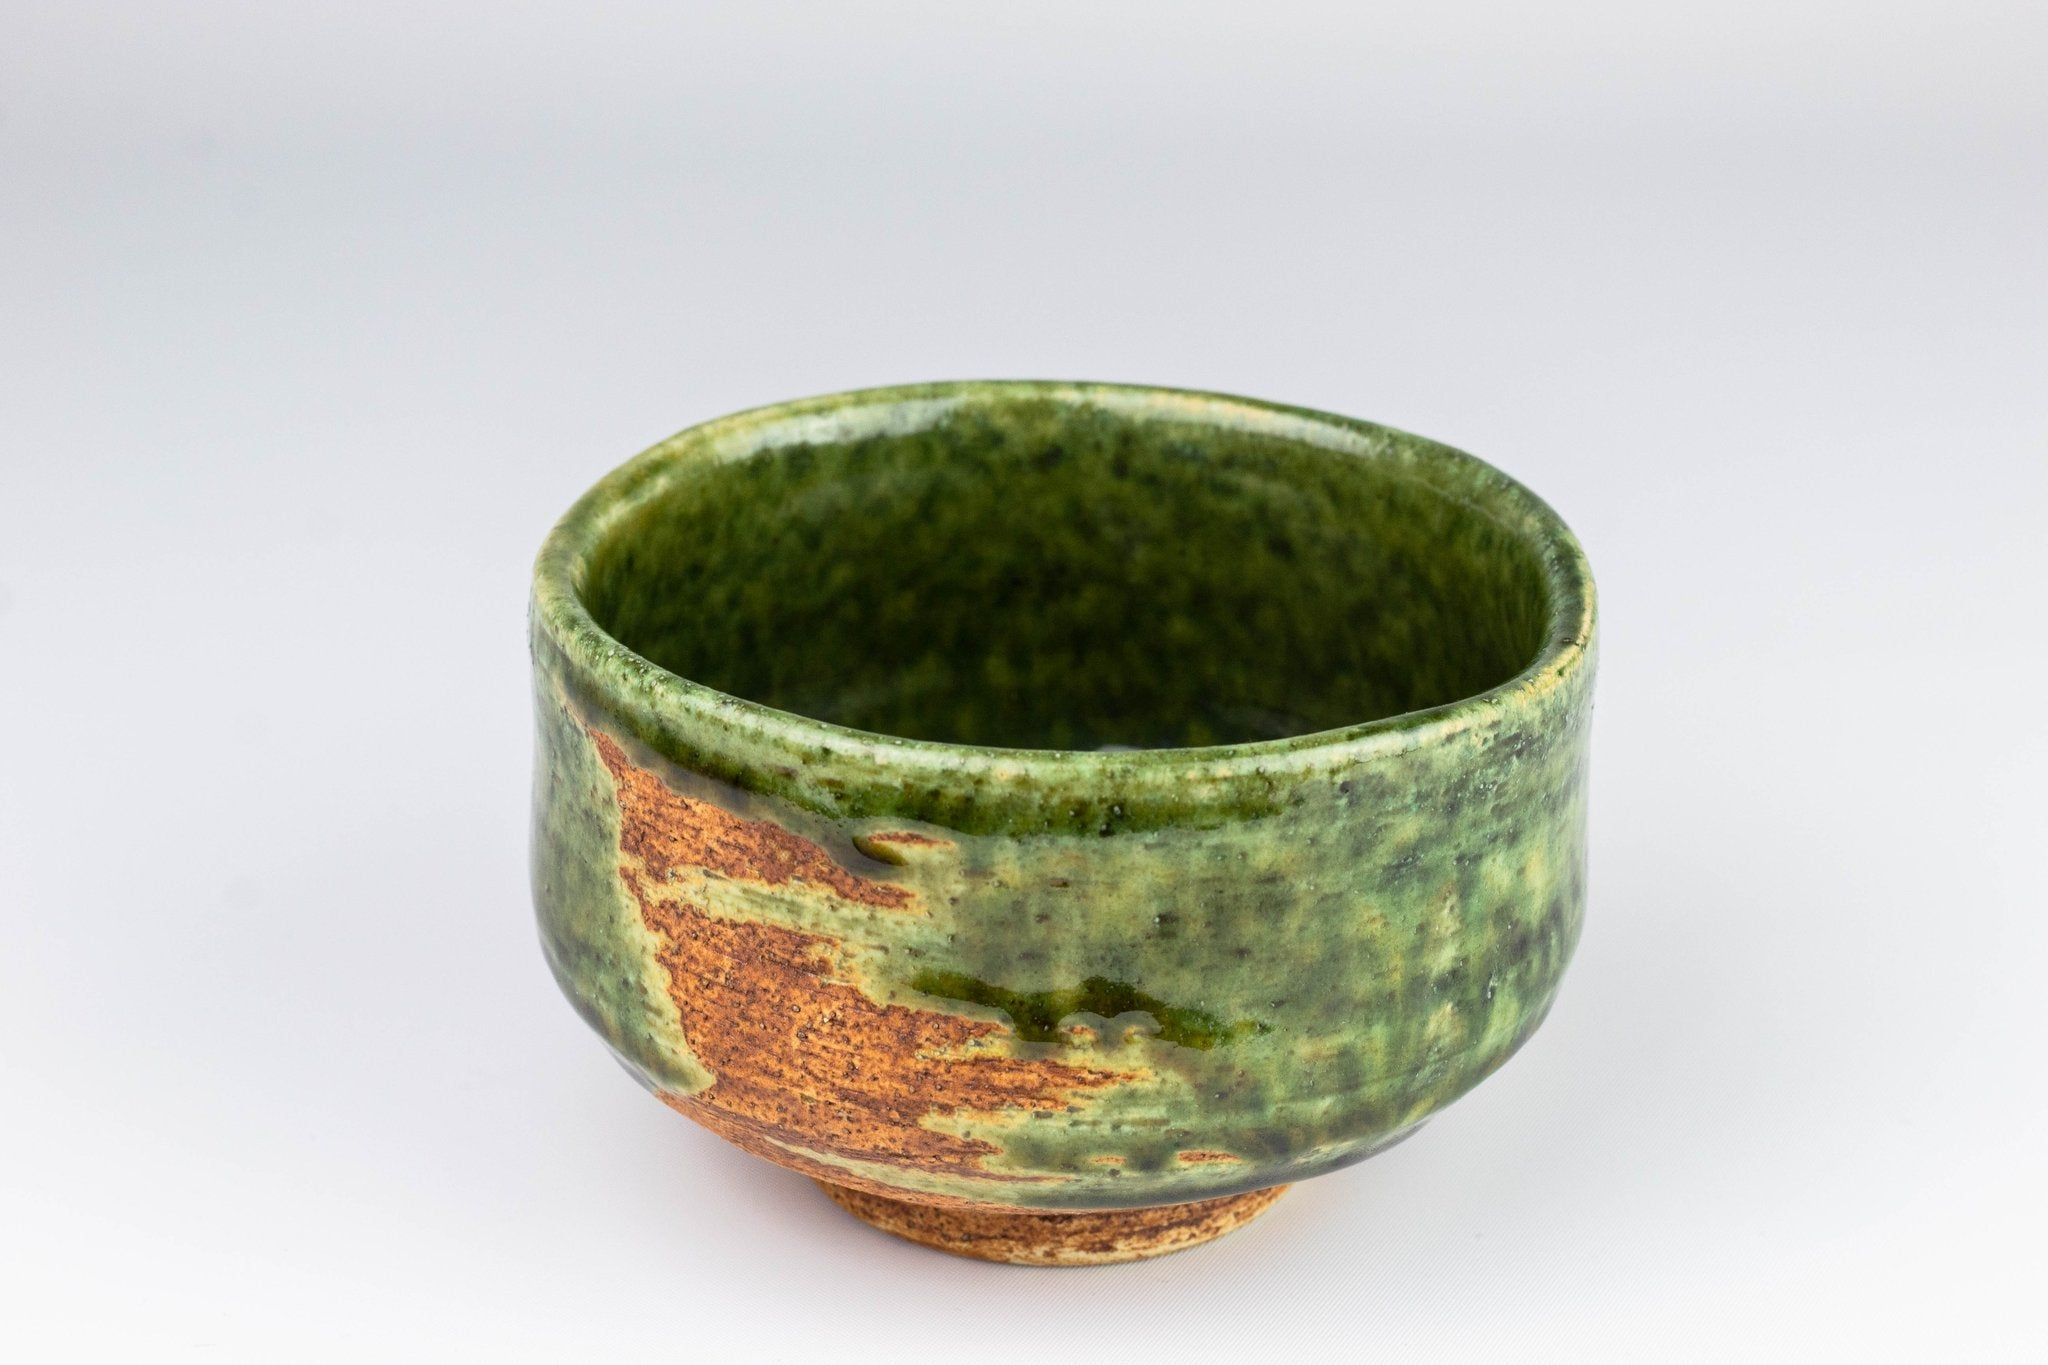 Oribe Matcha Tea Bowl by Fudogama